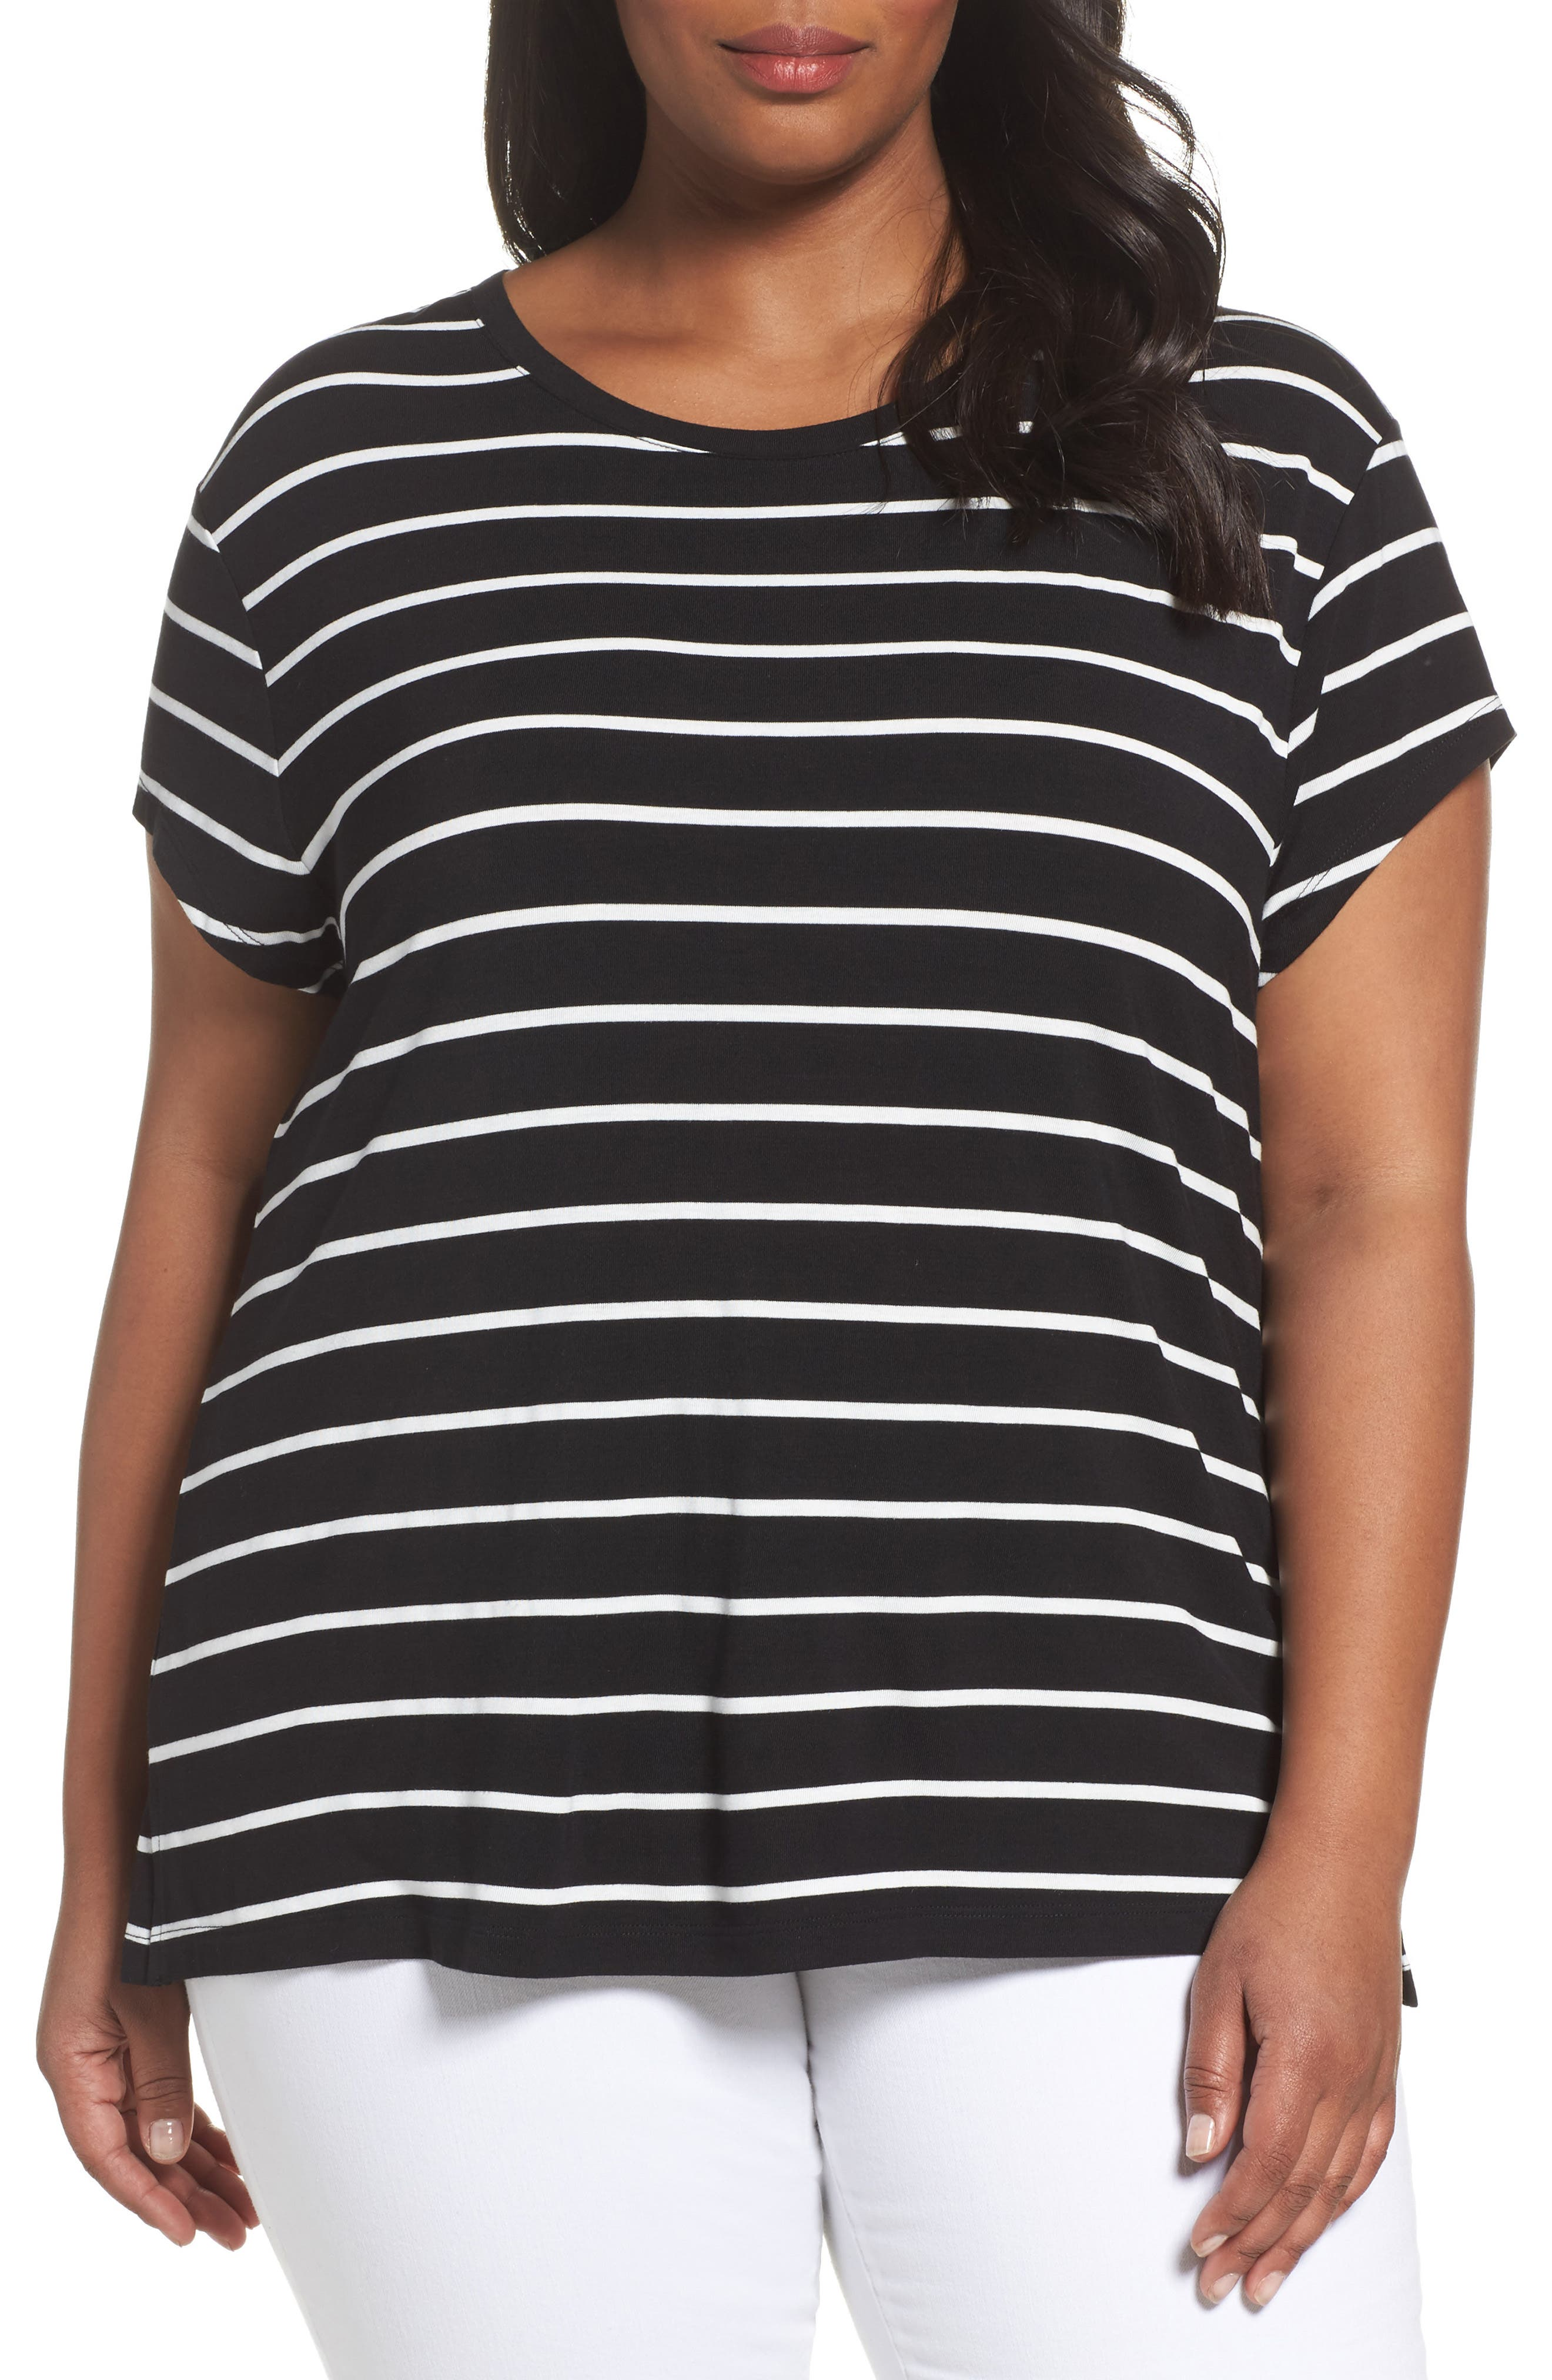 Alternate Image 1 Selected - Sejour Stripe Tie Back Tee (Plus Size)